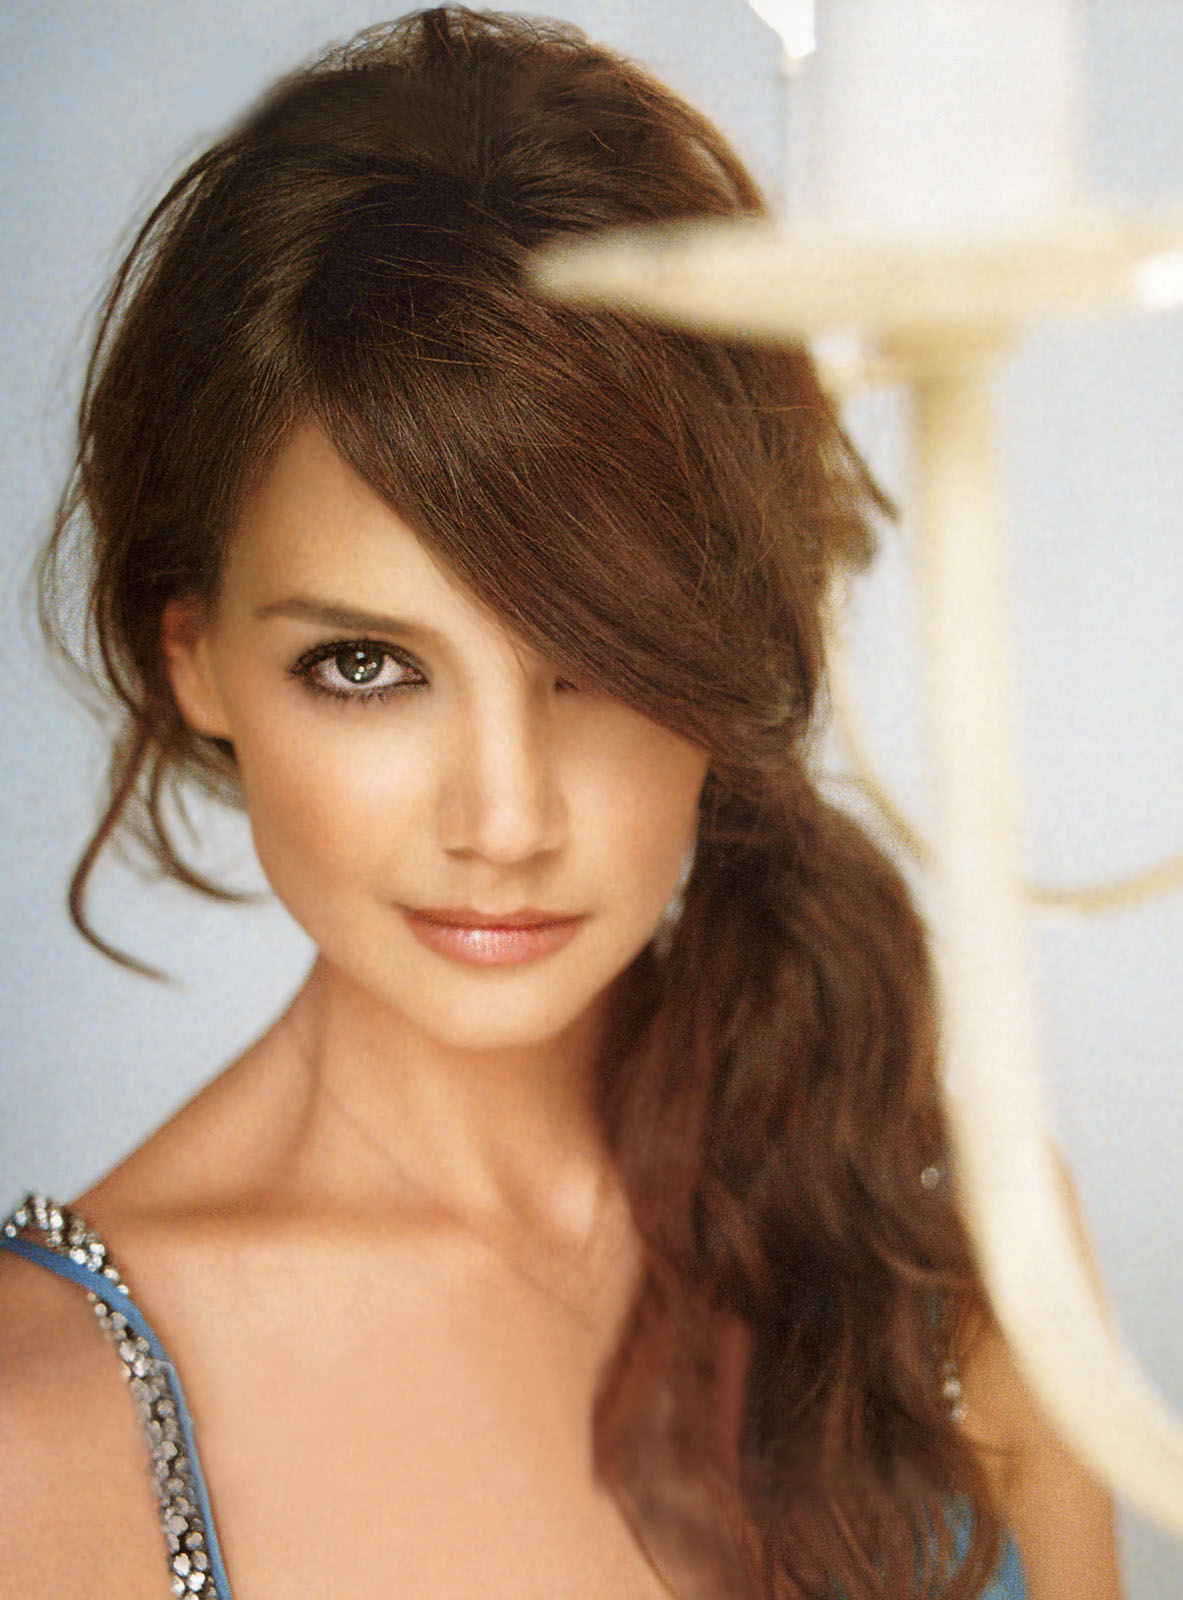 Katie holmes pictures katie holmes photo gallery 1